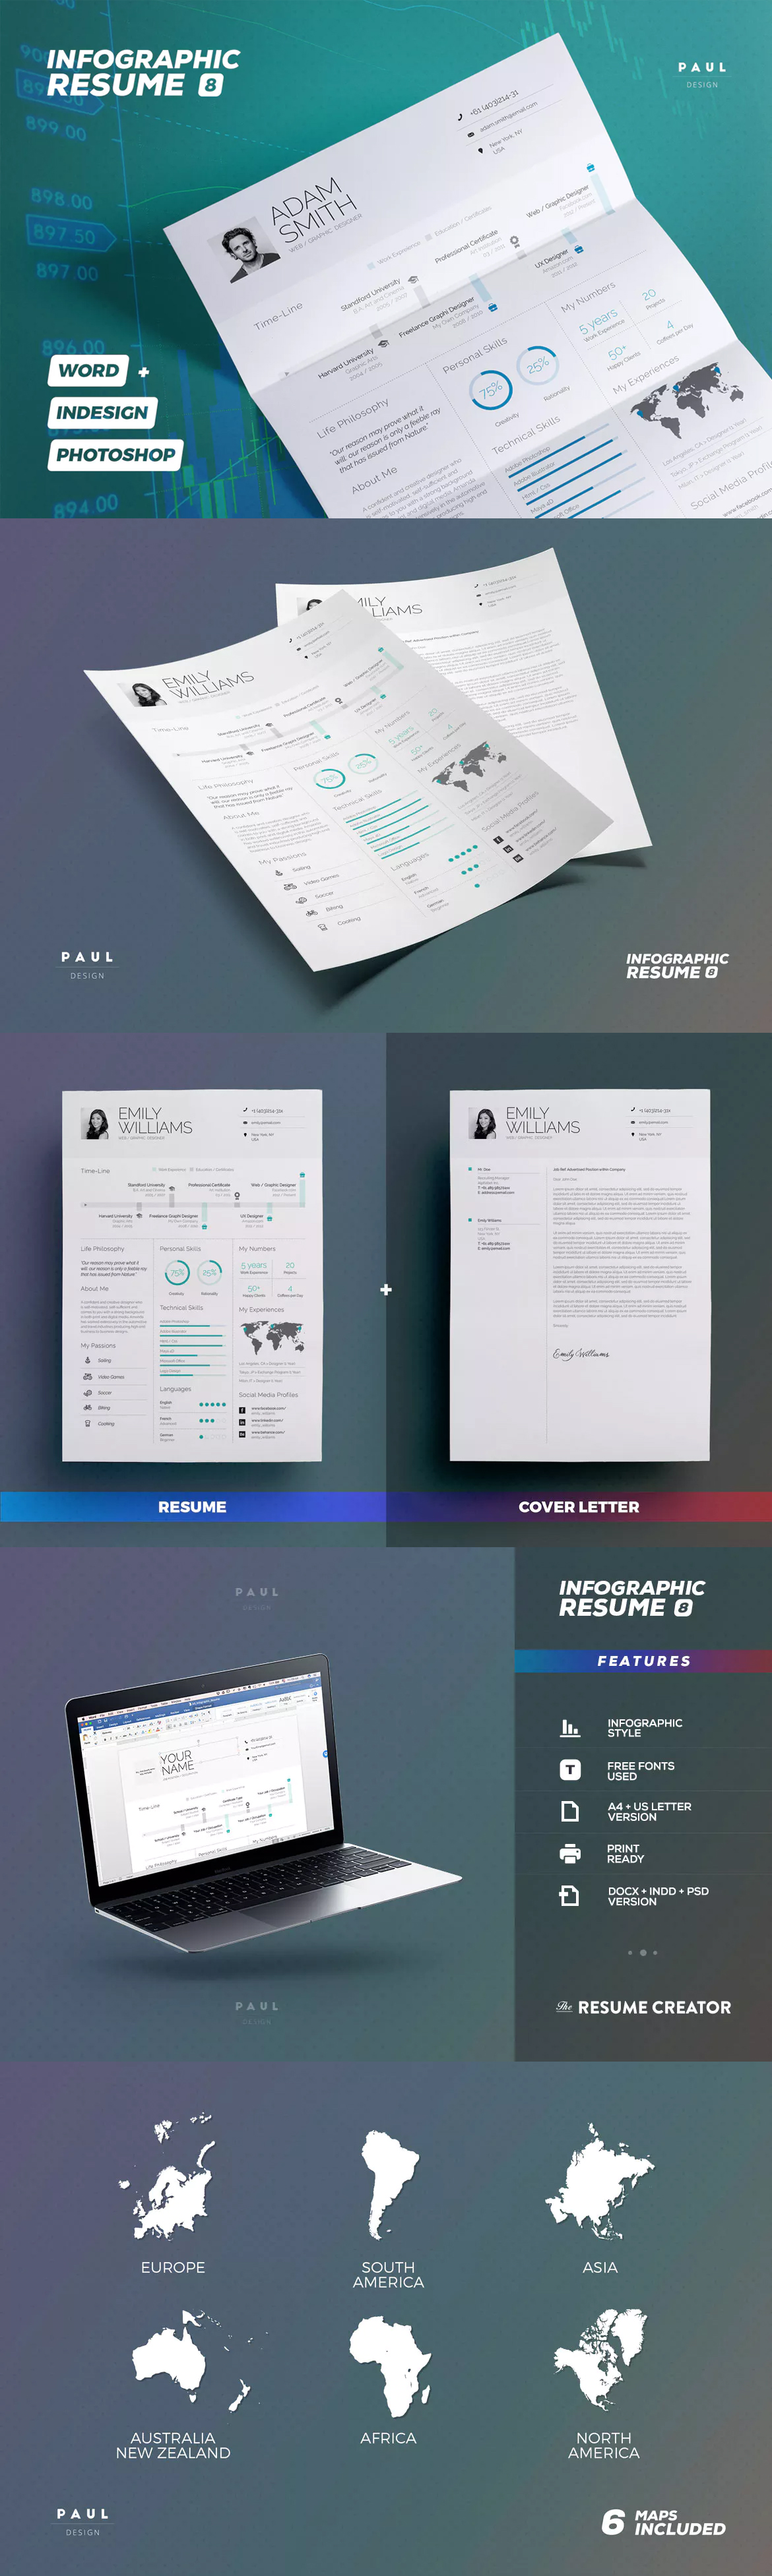 infographic resume cv indd psd ms word a4 and us letter paper size